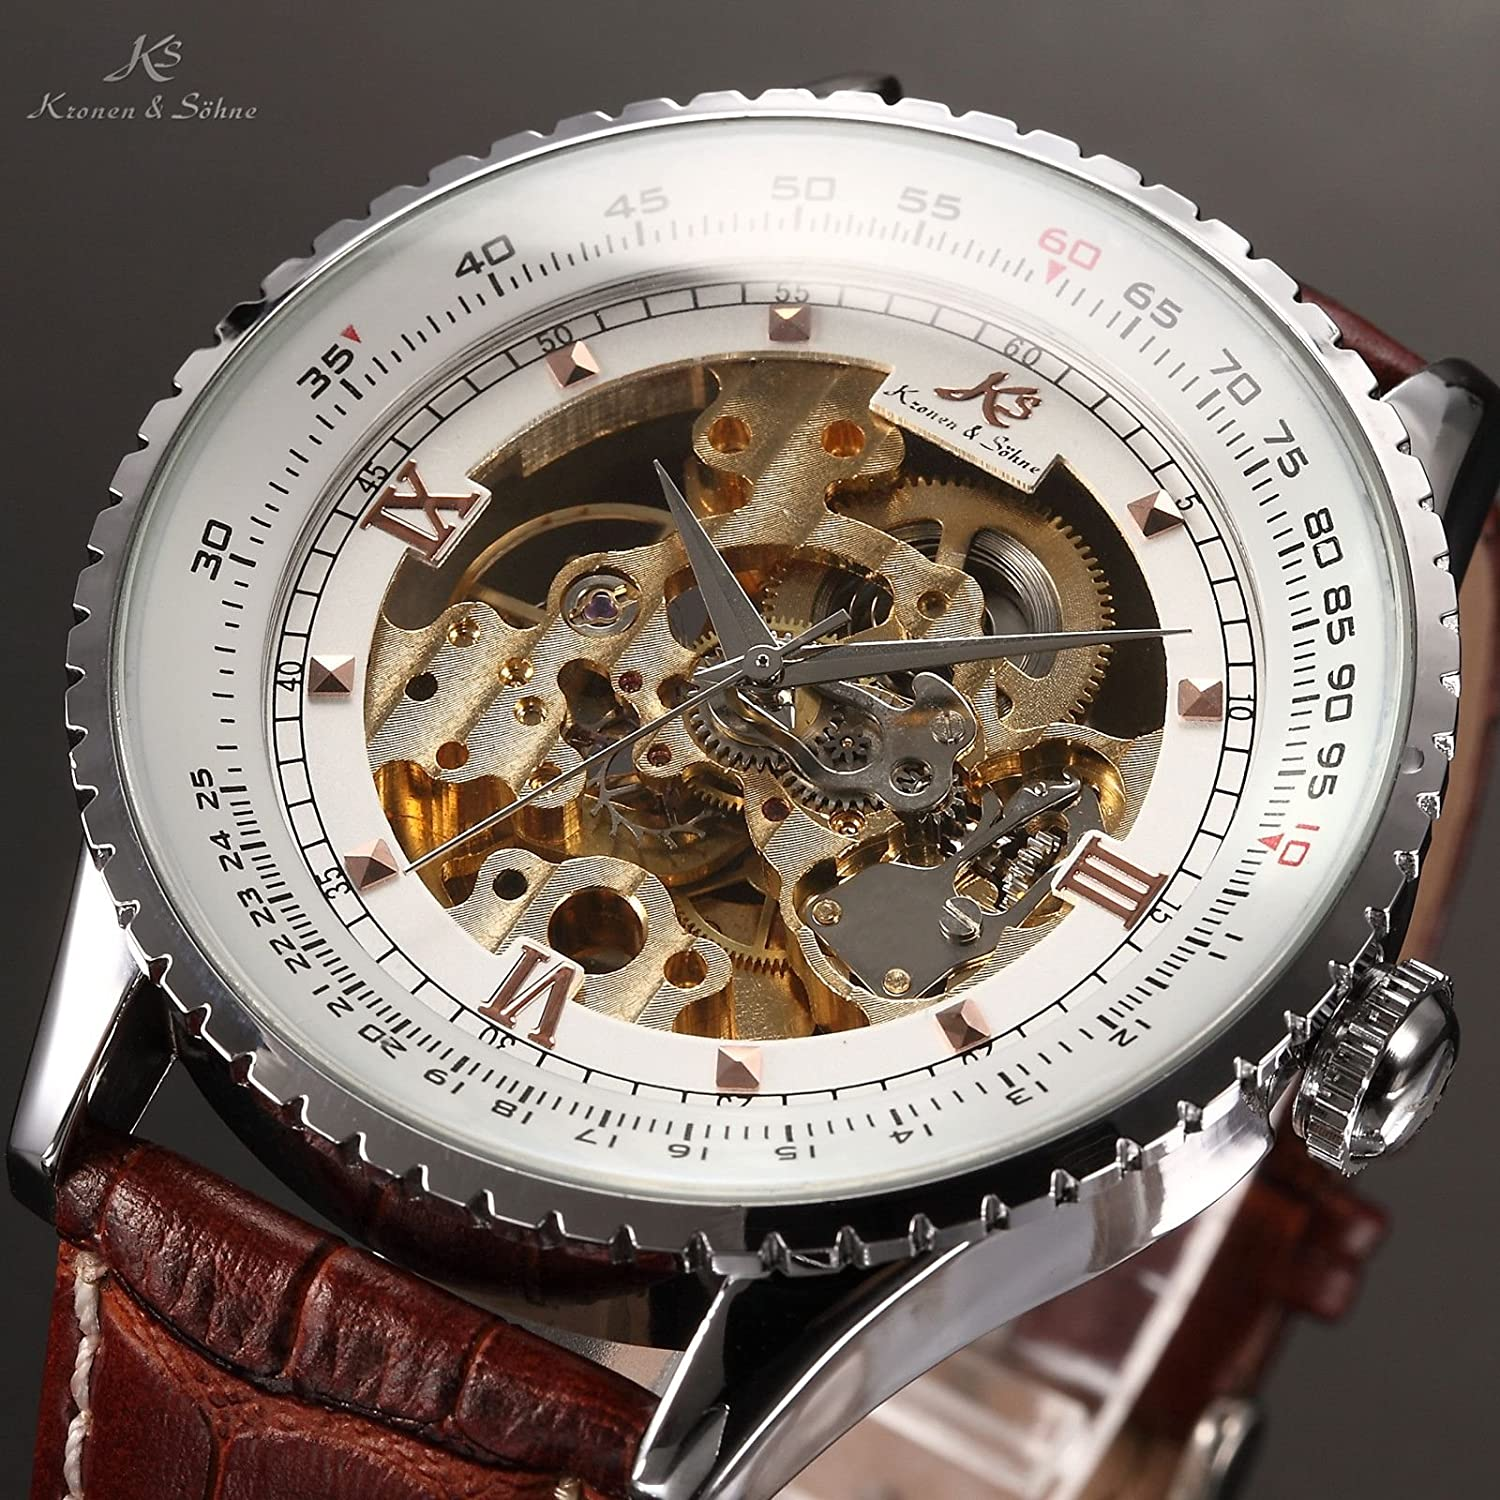 and contemporary royal for chronograph montroyalwatch co the mont style a watch fashion sophisticated conscious women by classic looking projects watches original men